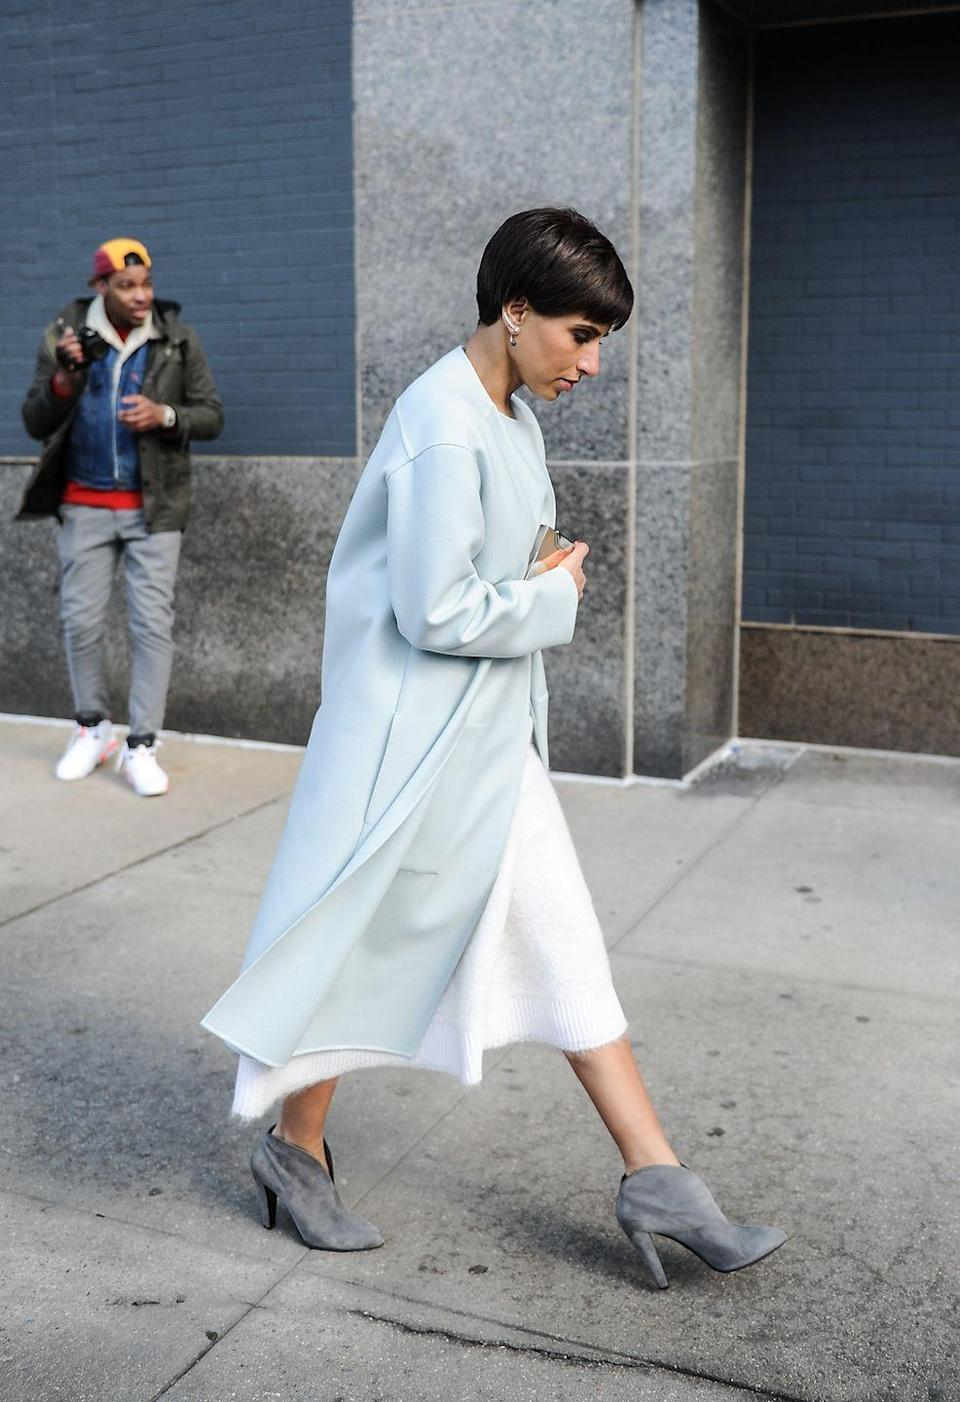 <p>Saudi Princess Deena Al-Juhani Abdulaziz is the first Editor in Chief of <em>Vogue Arabia</em>, and owns two members-only stores called D'NA in the Middle East that cater to private clients. </p>